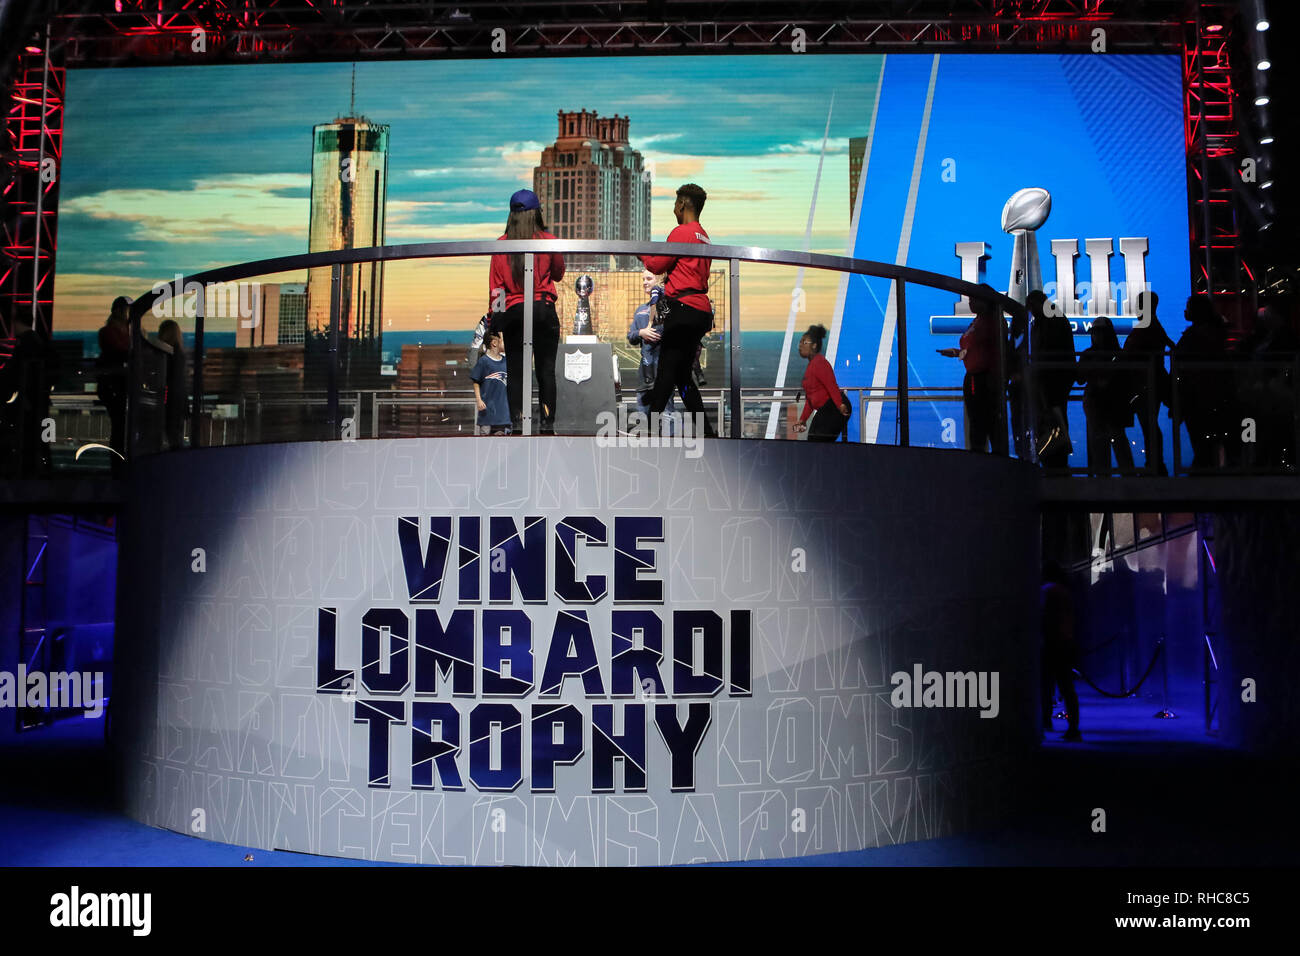 Vince Lombardi Trophy Stock Photos   Vince Lombardi Trophy Stock ... b4aa1d471